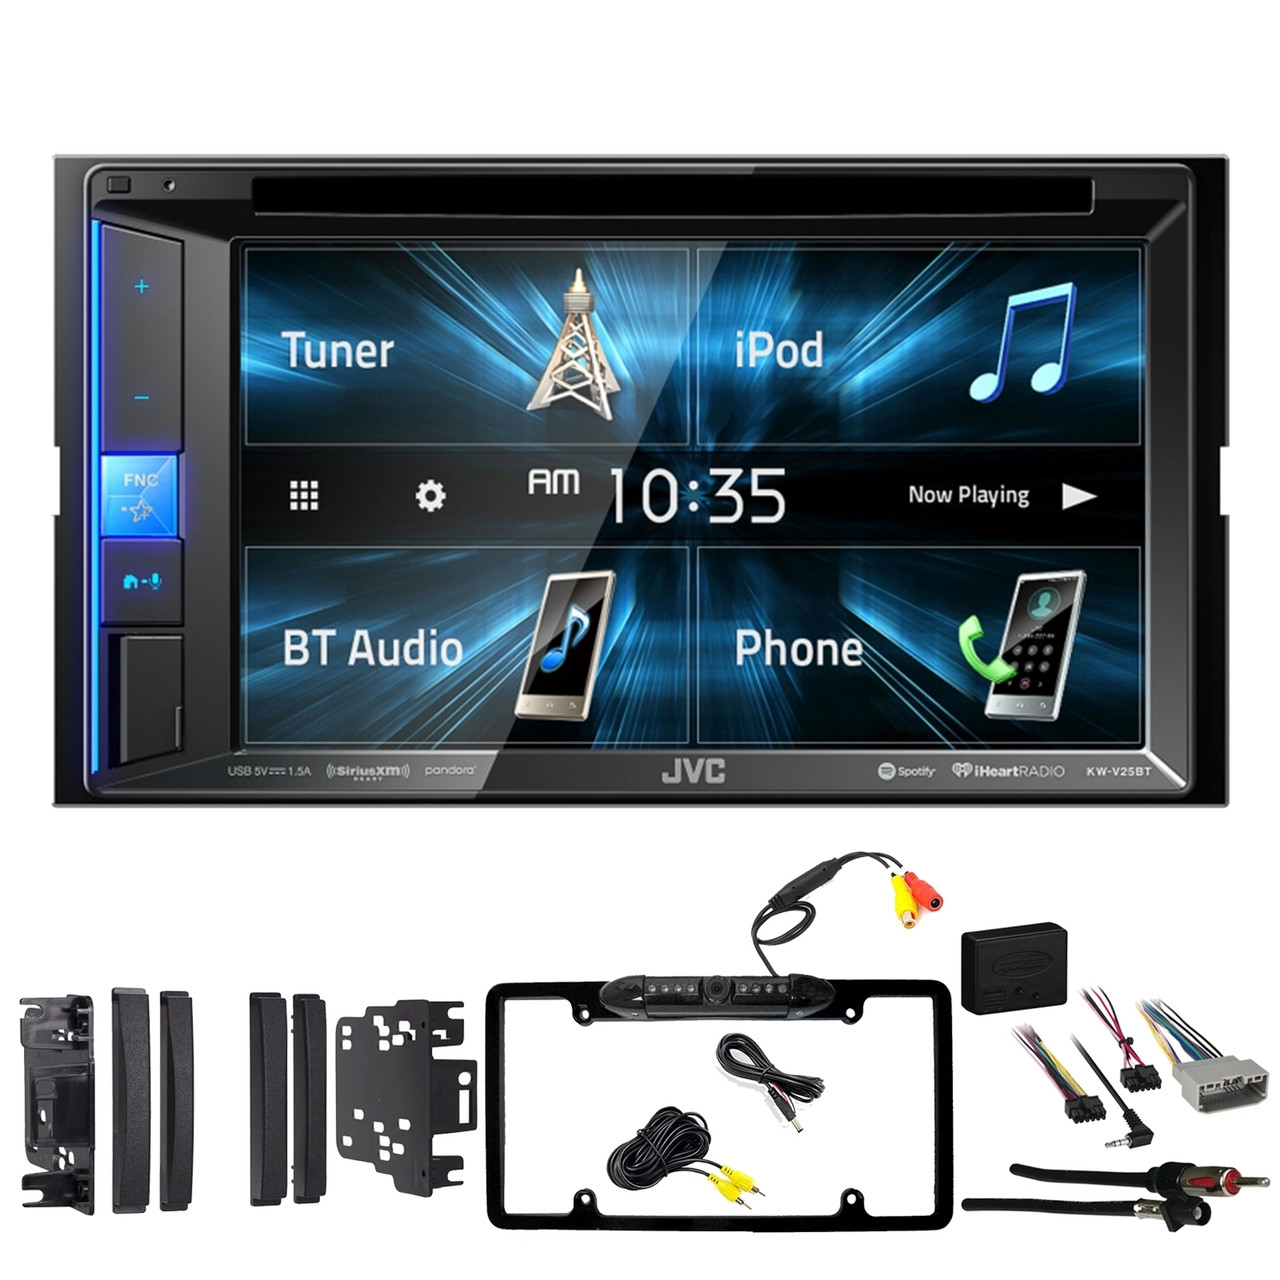 medium resolution of jvc kw v25bt 6 2 double din bluetooth touchscreen stereo receiver metra dash kit for select 2007 up chrysler vehicles wiring interface antenna adapter